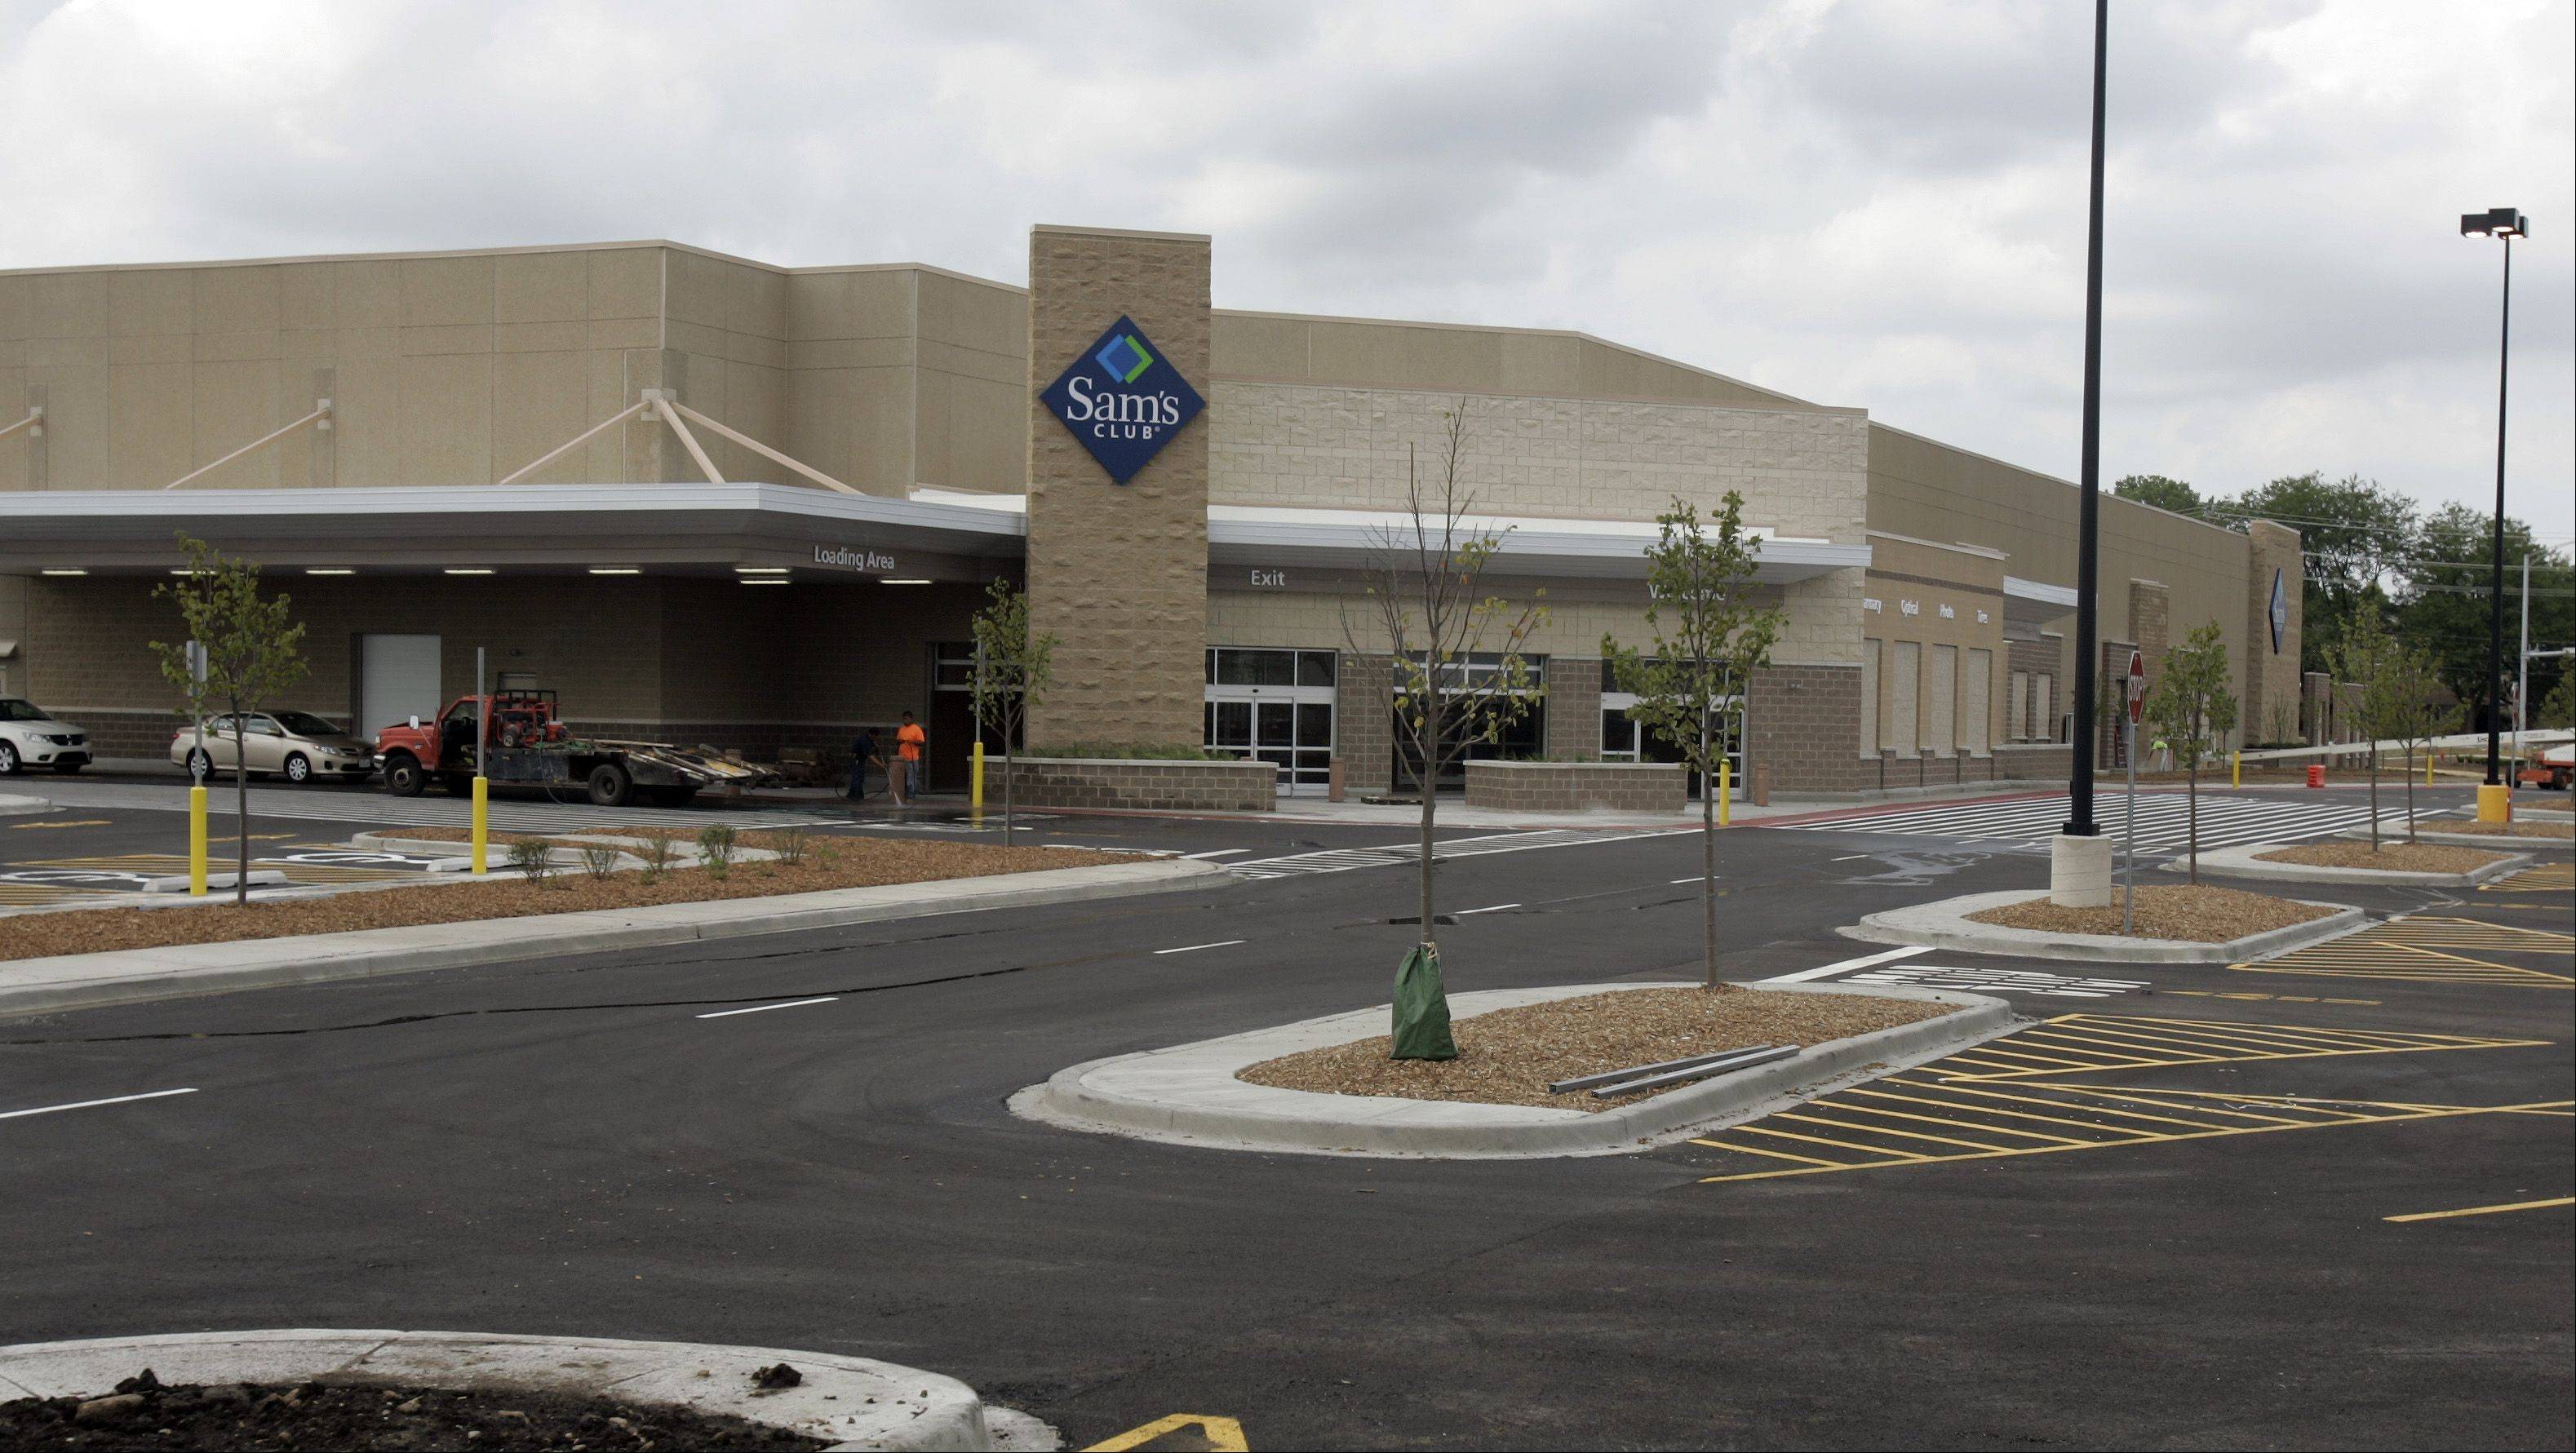 Sam's Club in Elgin is set to open later this summer and is preparing to hire almost 200 employees. A temporary hiring center has been set up in South Elgin to collect applications for a range of positions, including full-time, part-time and supervisor jobs. Most employees will start this month to get the store ready for its grand opening.